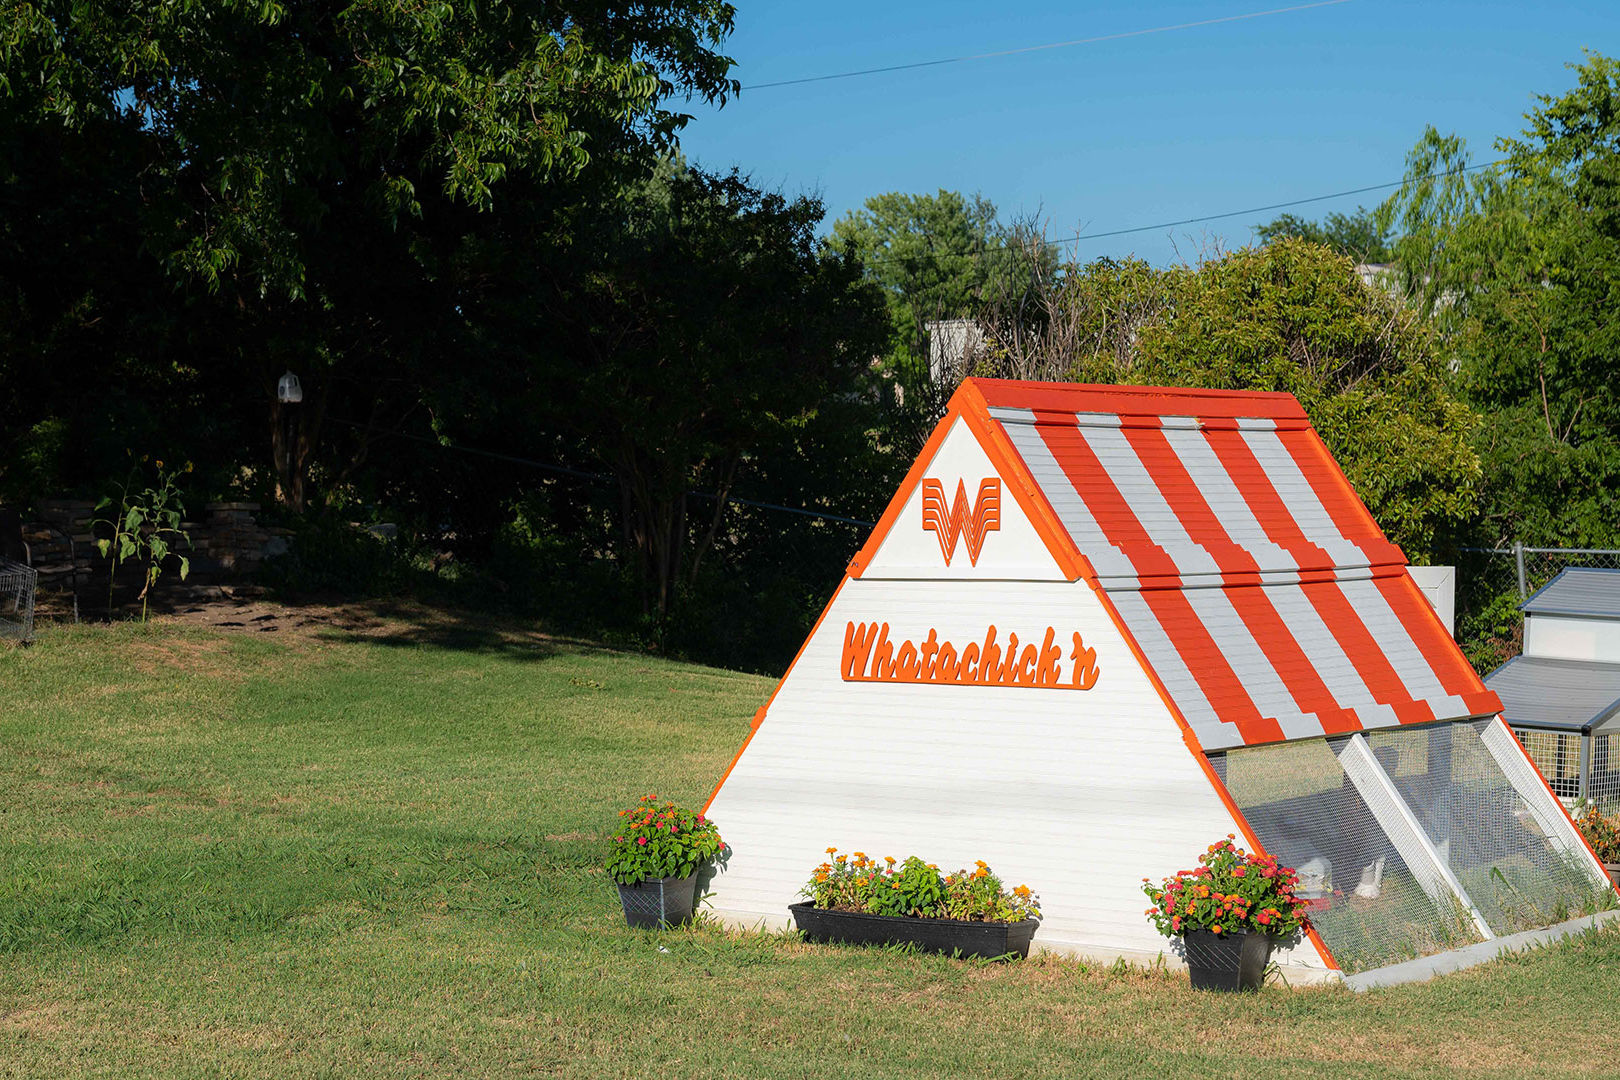 Whatacoop! Texas Couple Builds Whataburger-Inspired Backyard Chicken Coop